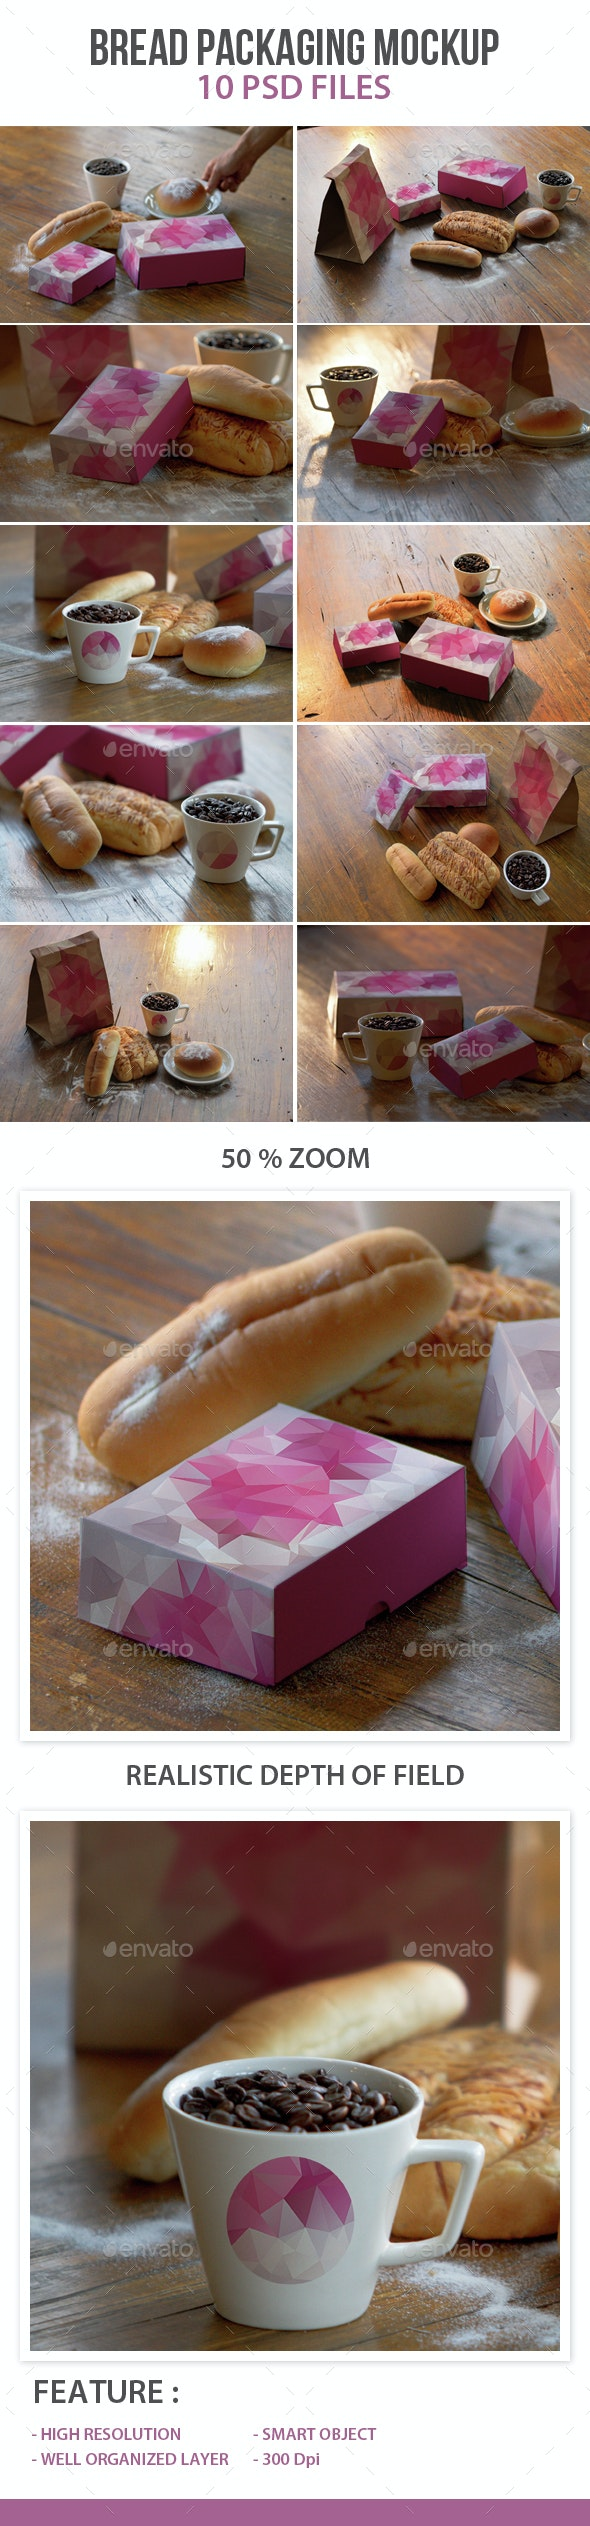 Bread Packaging Mockup - Product Mock-Ups Graphics